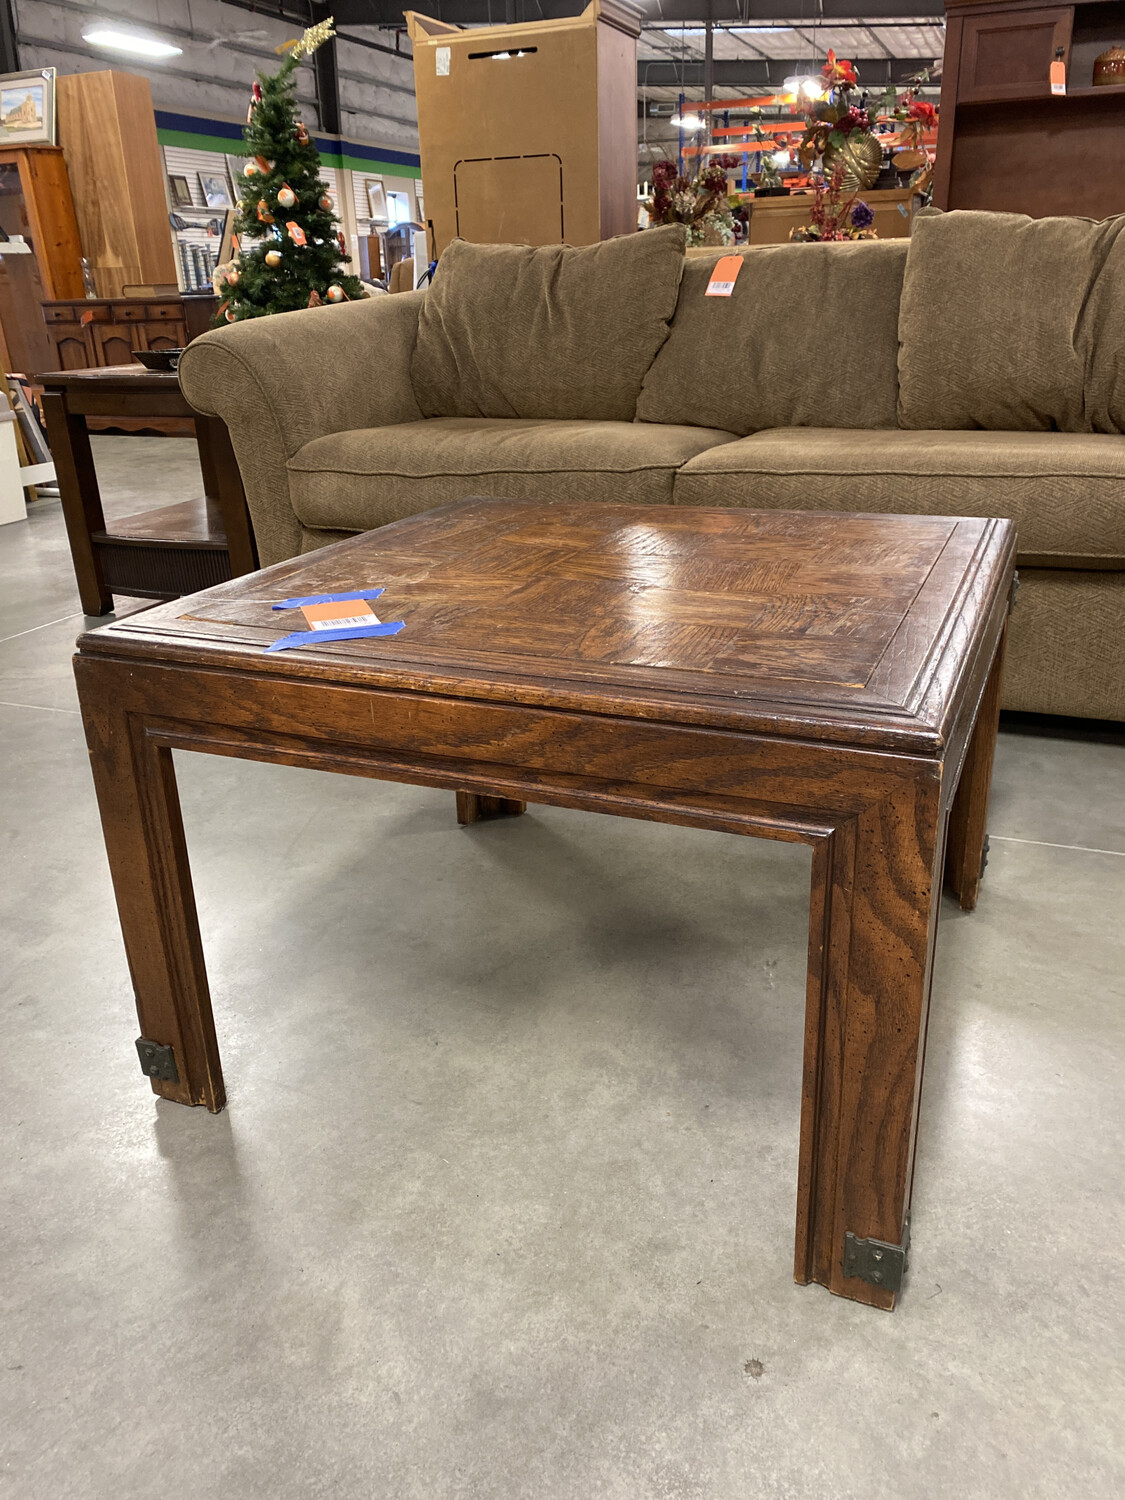 COFFEE TABLE sq wood